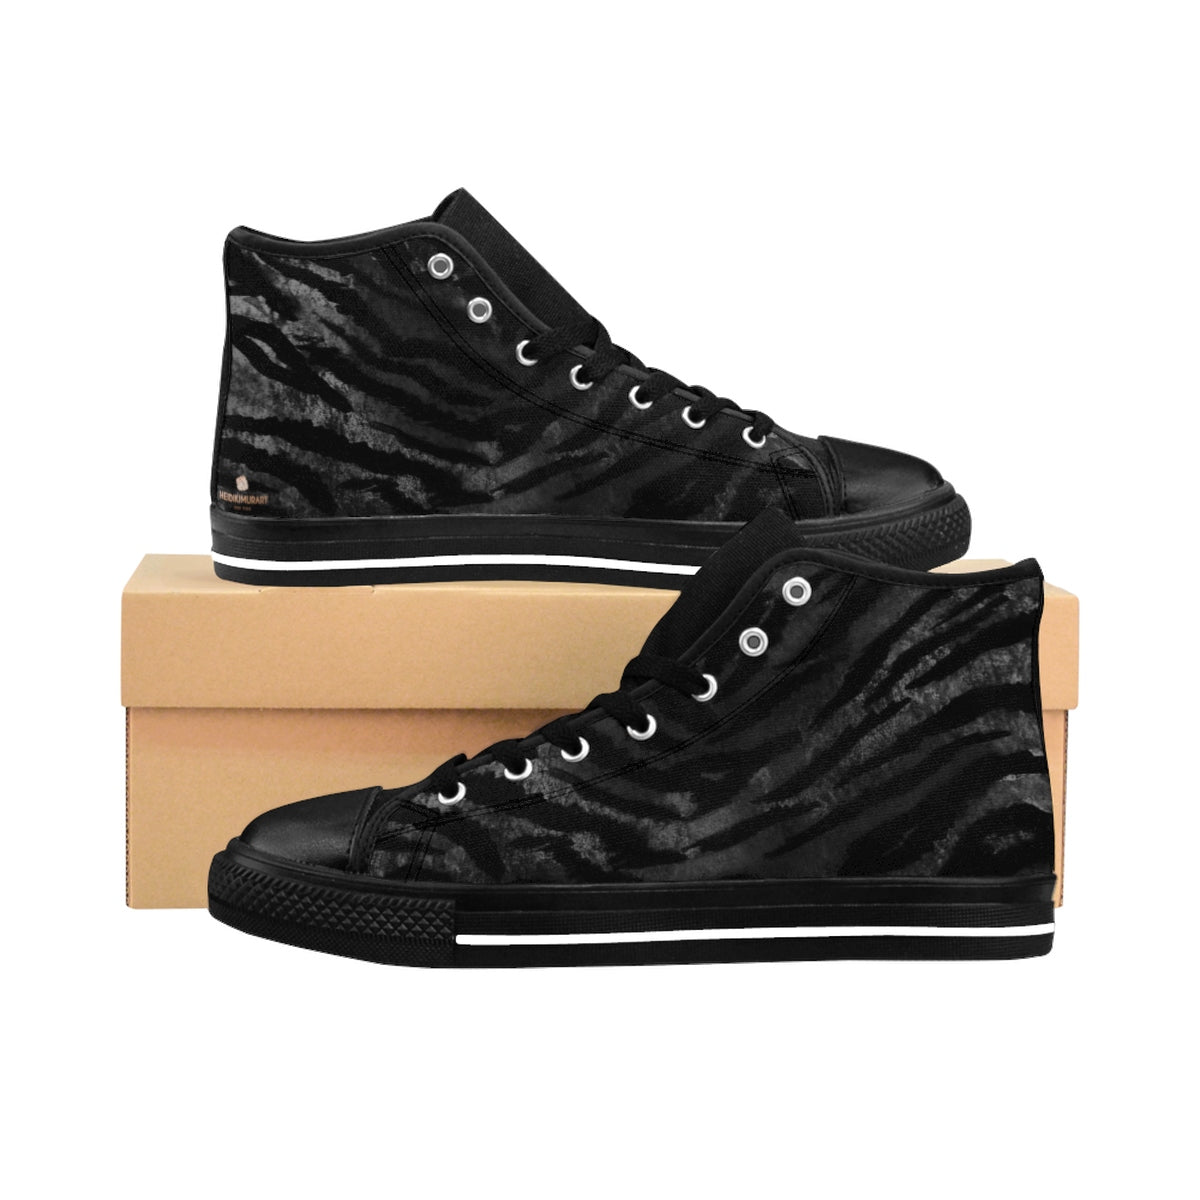 Black Tiger Striped Animal Print Women's High Top Sneakers Running Tennis Shoes-Women's High Top Sneakers-US 9-Heidi Kimura Art LLC Black Tiger Striped Women's Sneakers, Black Tiger Striped Stripe Faux Fur Animal Print Women's High Top Tennis Sneakers, Animal Print Black Sneakers, Ladies Tiger Stripe Faux Fur Shoes